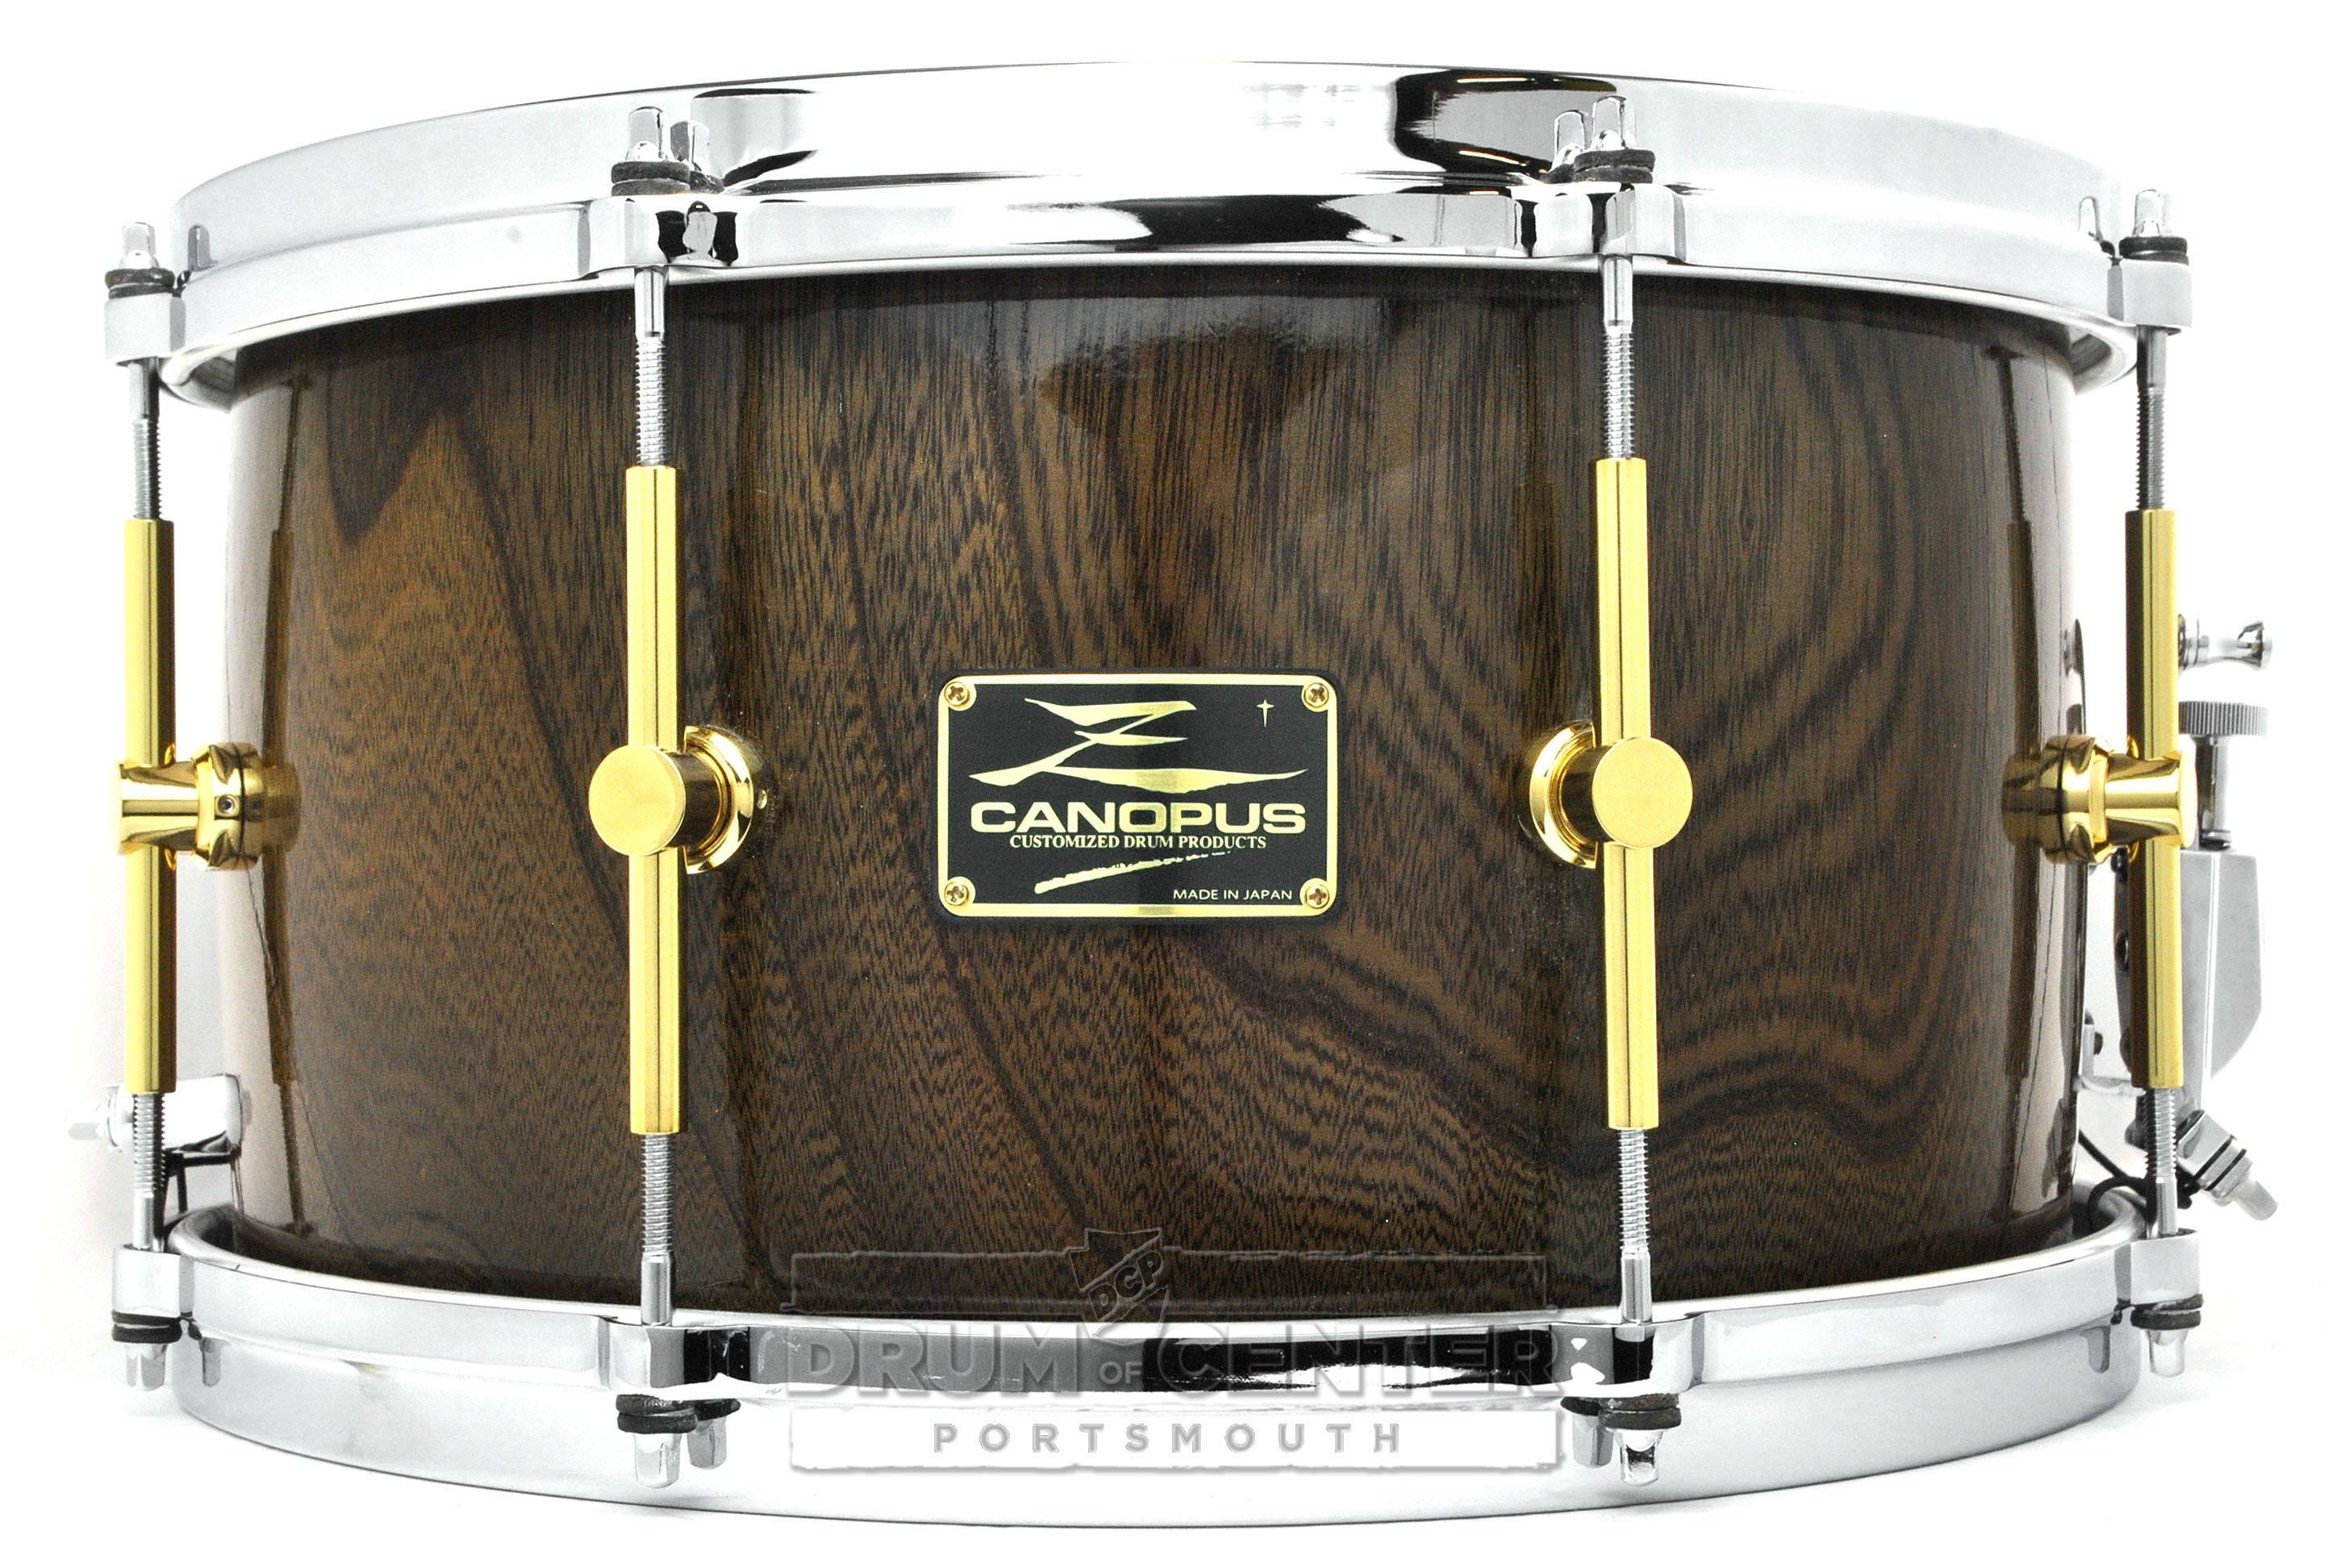 used canopus zelkova snare drum 14x8 the snare wall in 2019 drums snare drum percussion. Black Bedroom Furniture Sets. Home Design Ideas